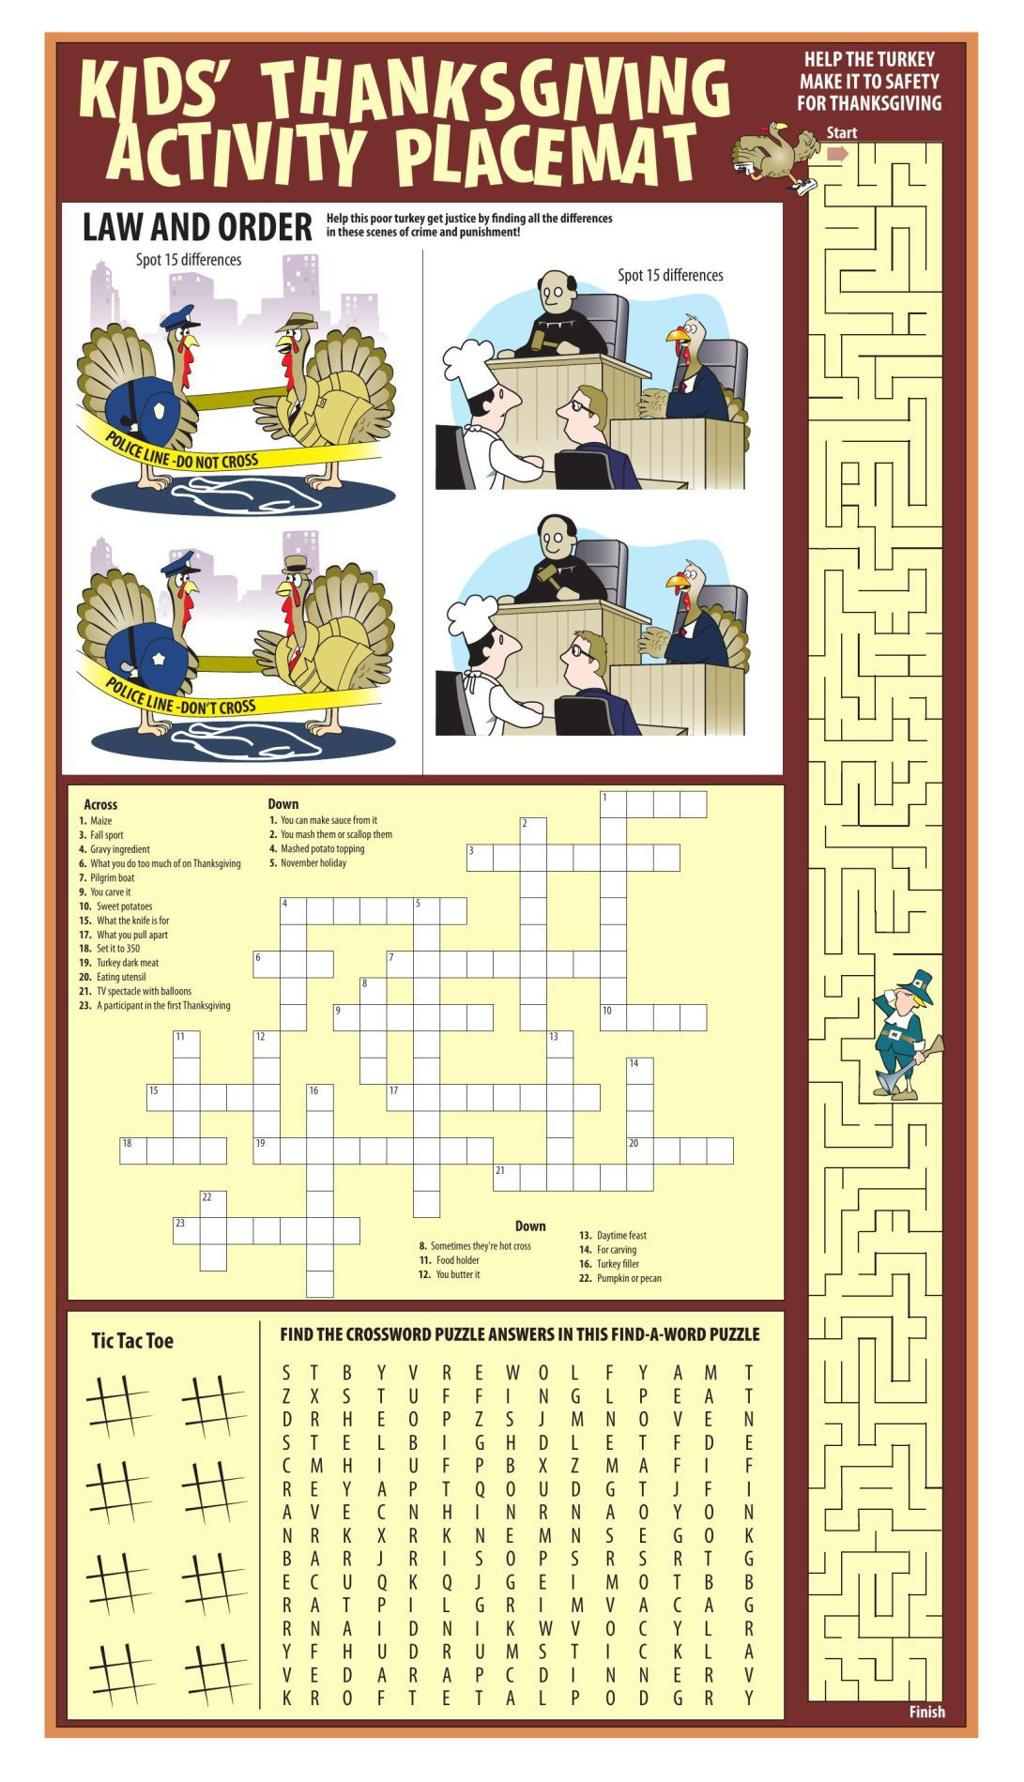 Print out our placemat for Thanksgiving fun | Lifestyles